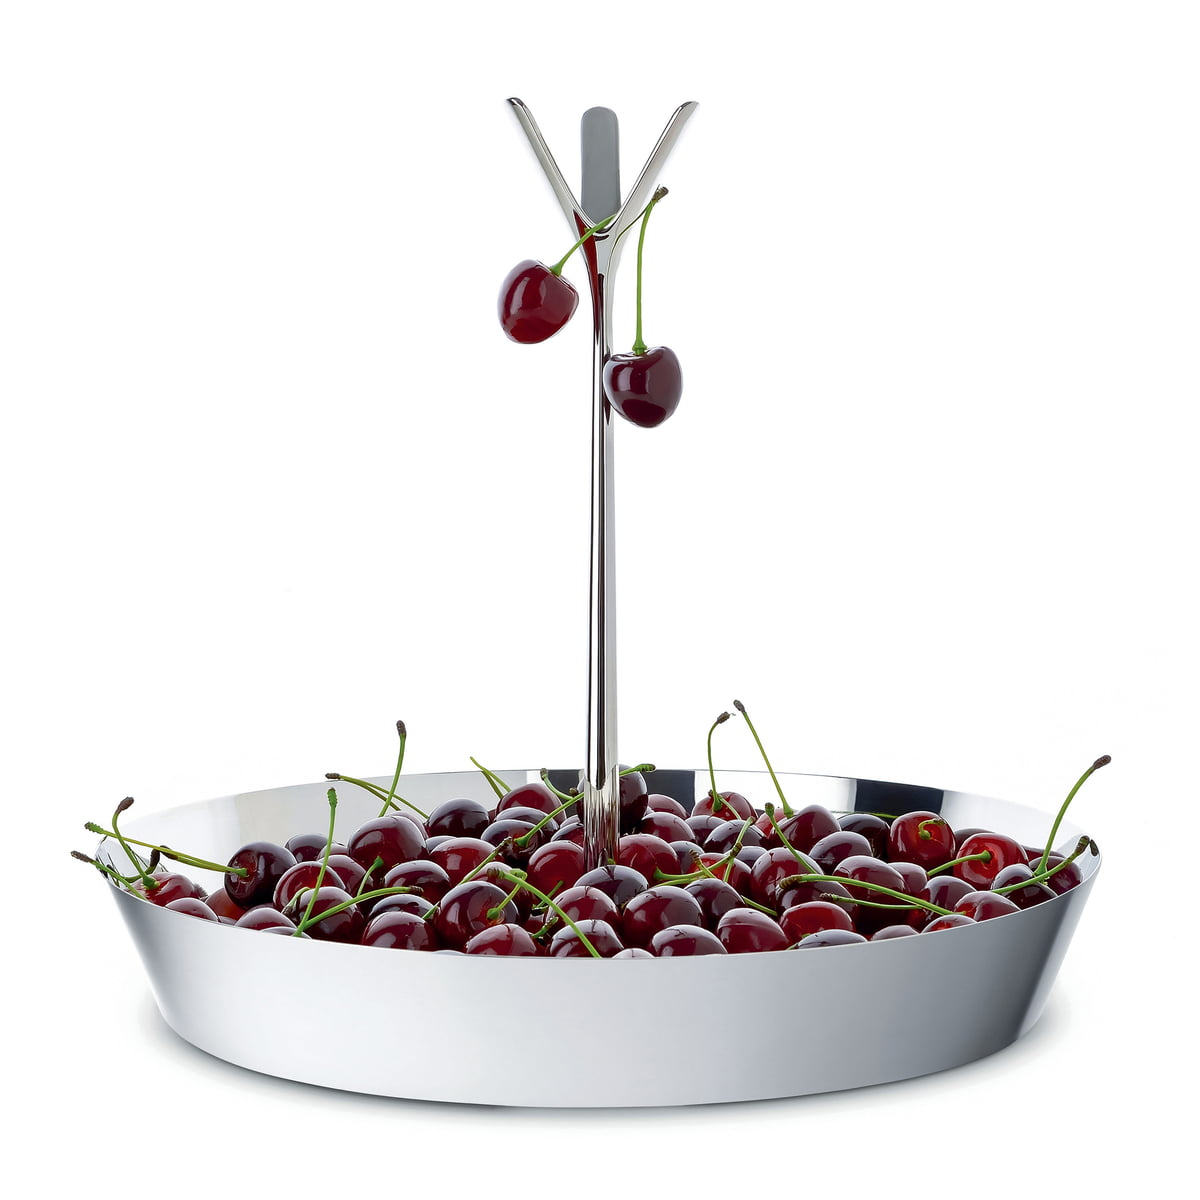 tutti frutti fruit bowl by alessi in the shop - unique fruit bowl with pronged top